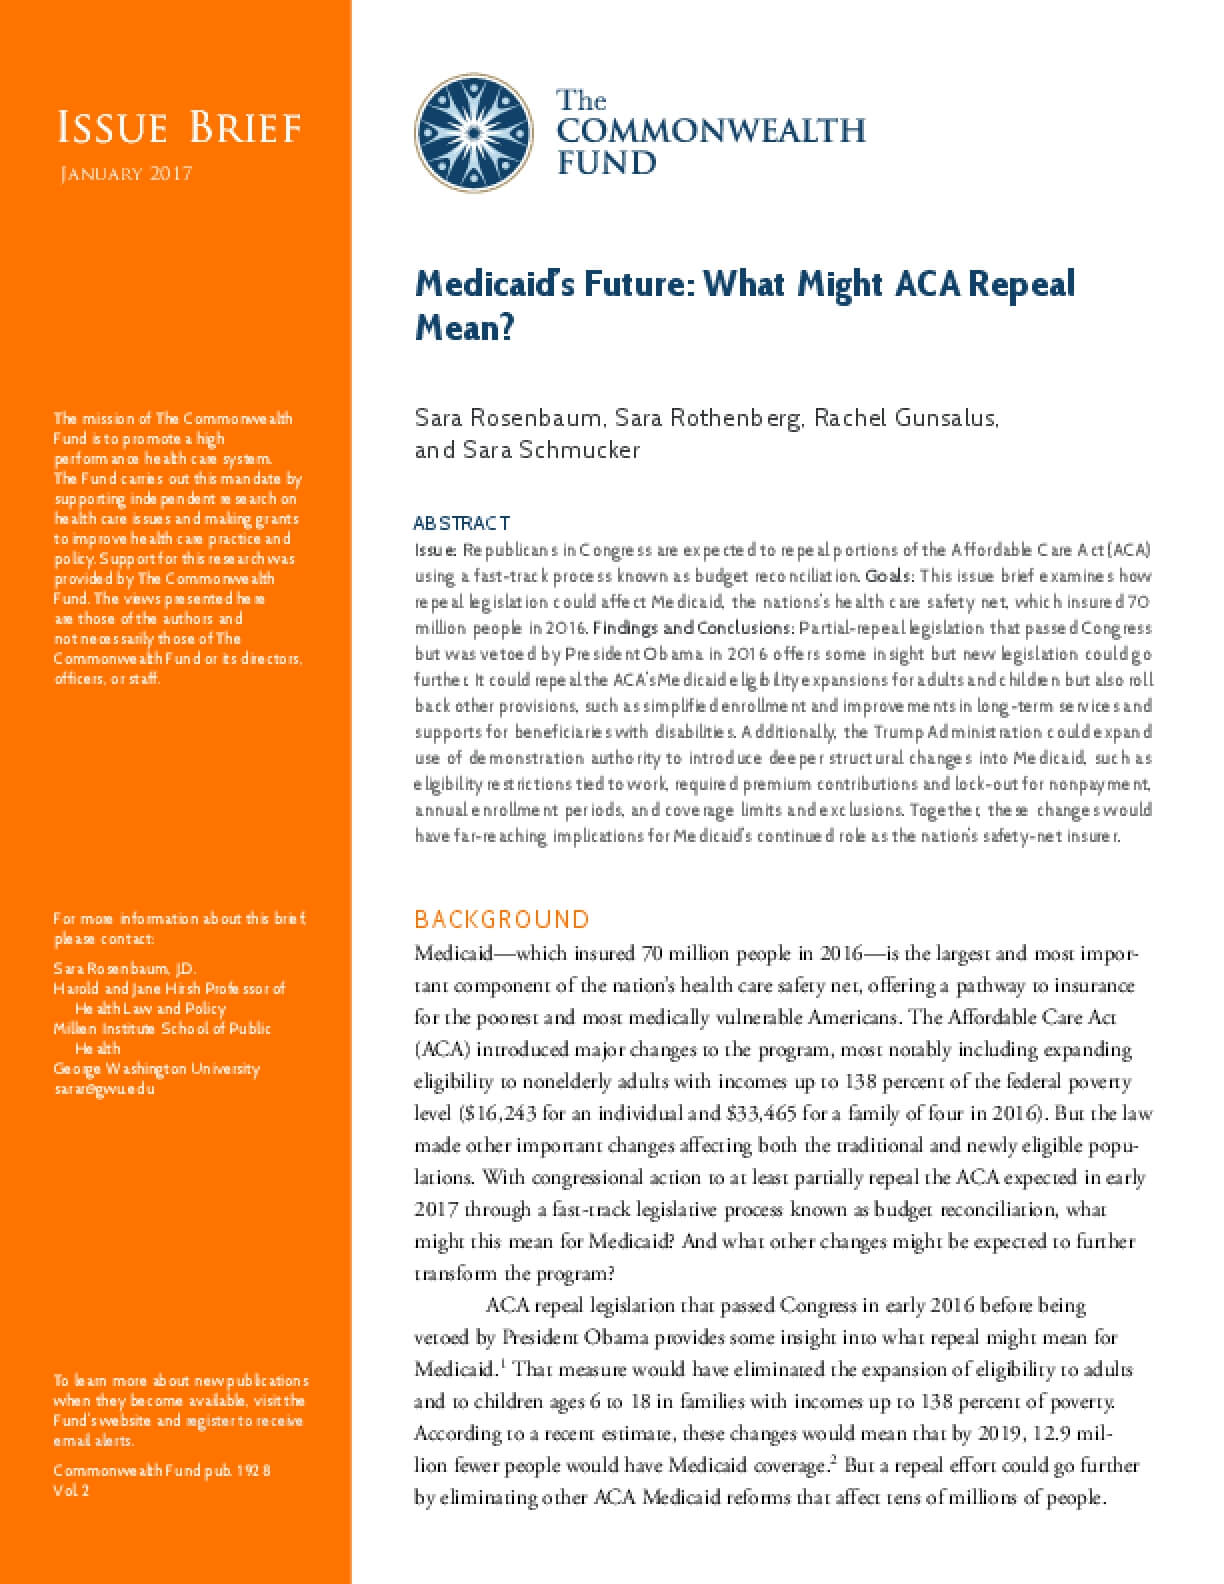 Medicaid's Future: What Might ACA Repeal Mean?